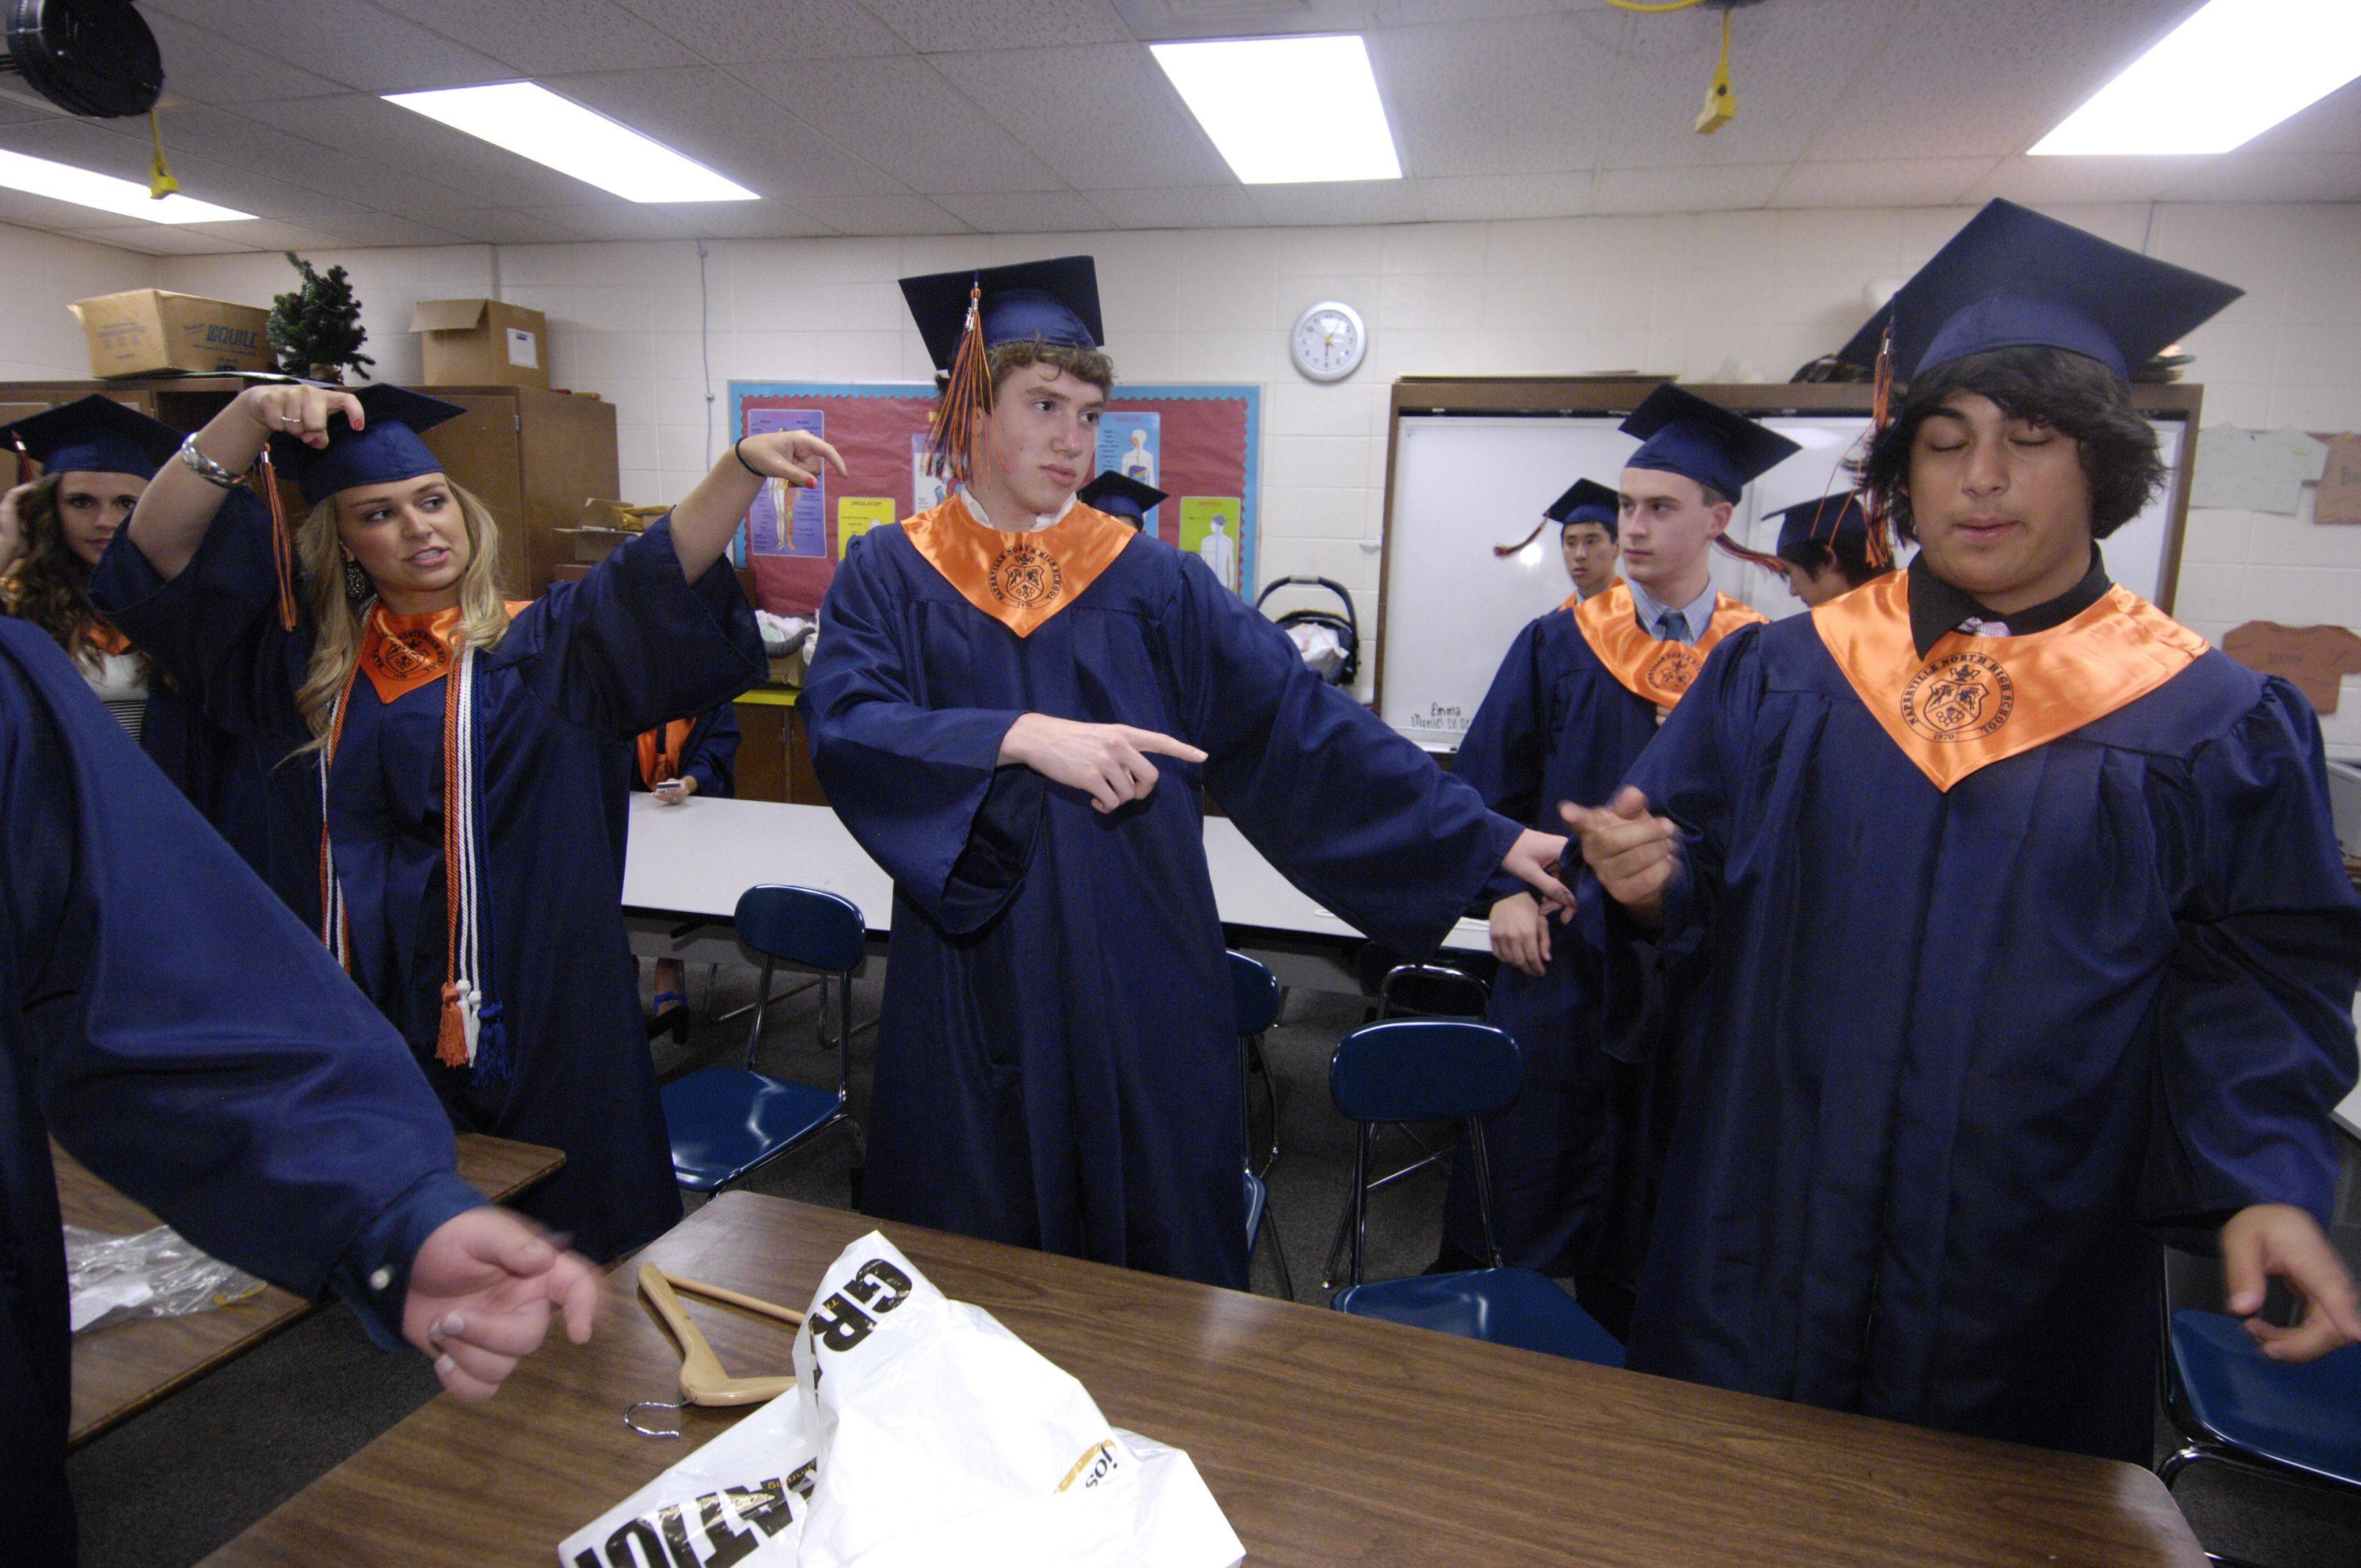 Images from the Naperville North High School graduation on Wednesday, May 25th.